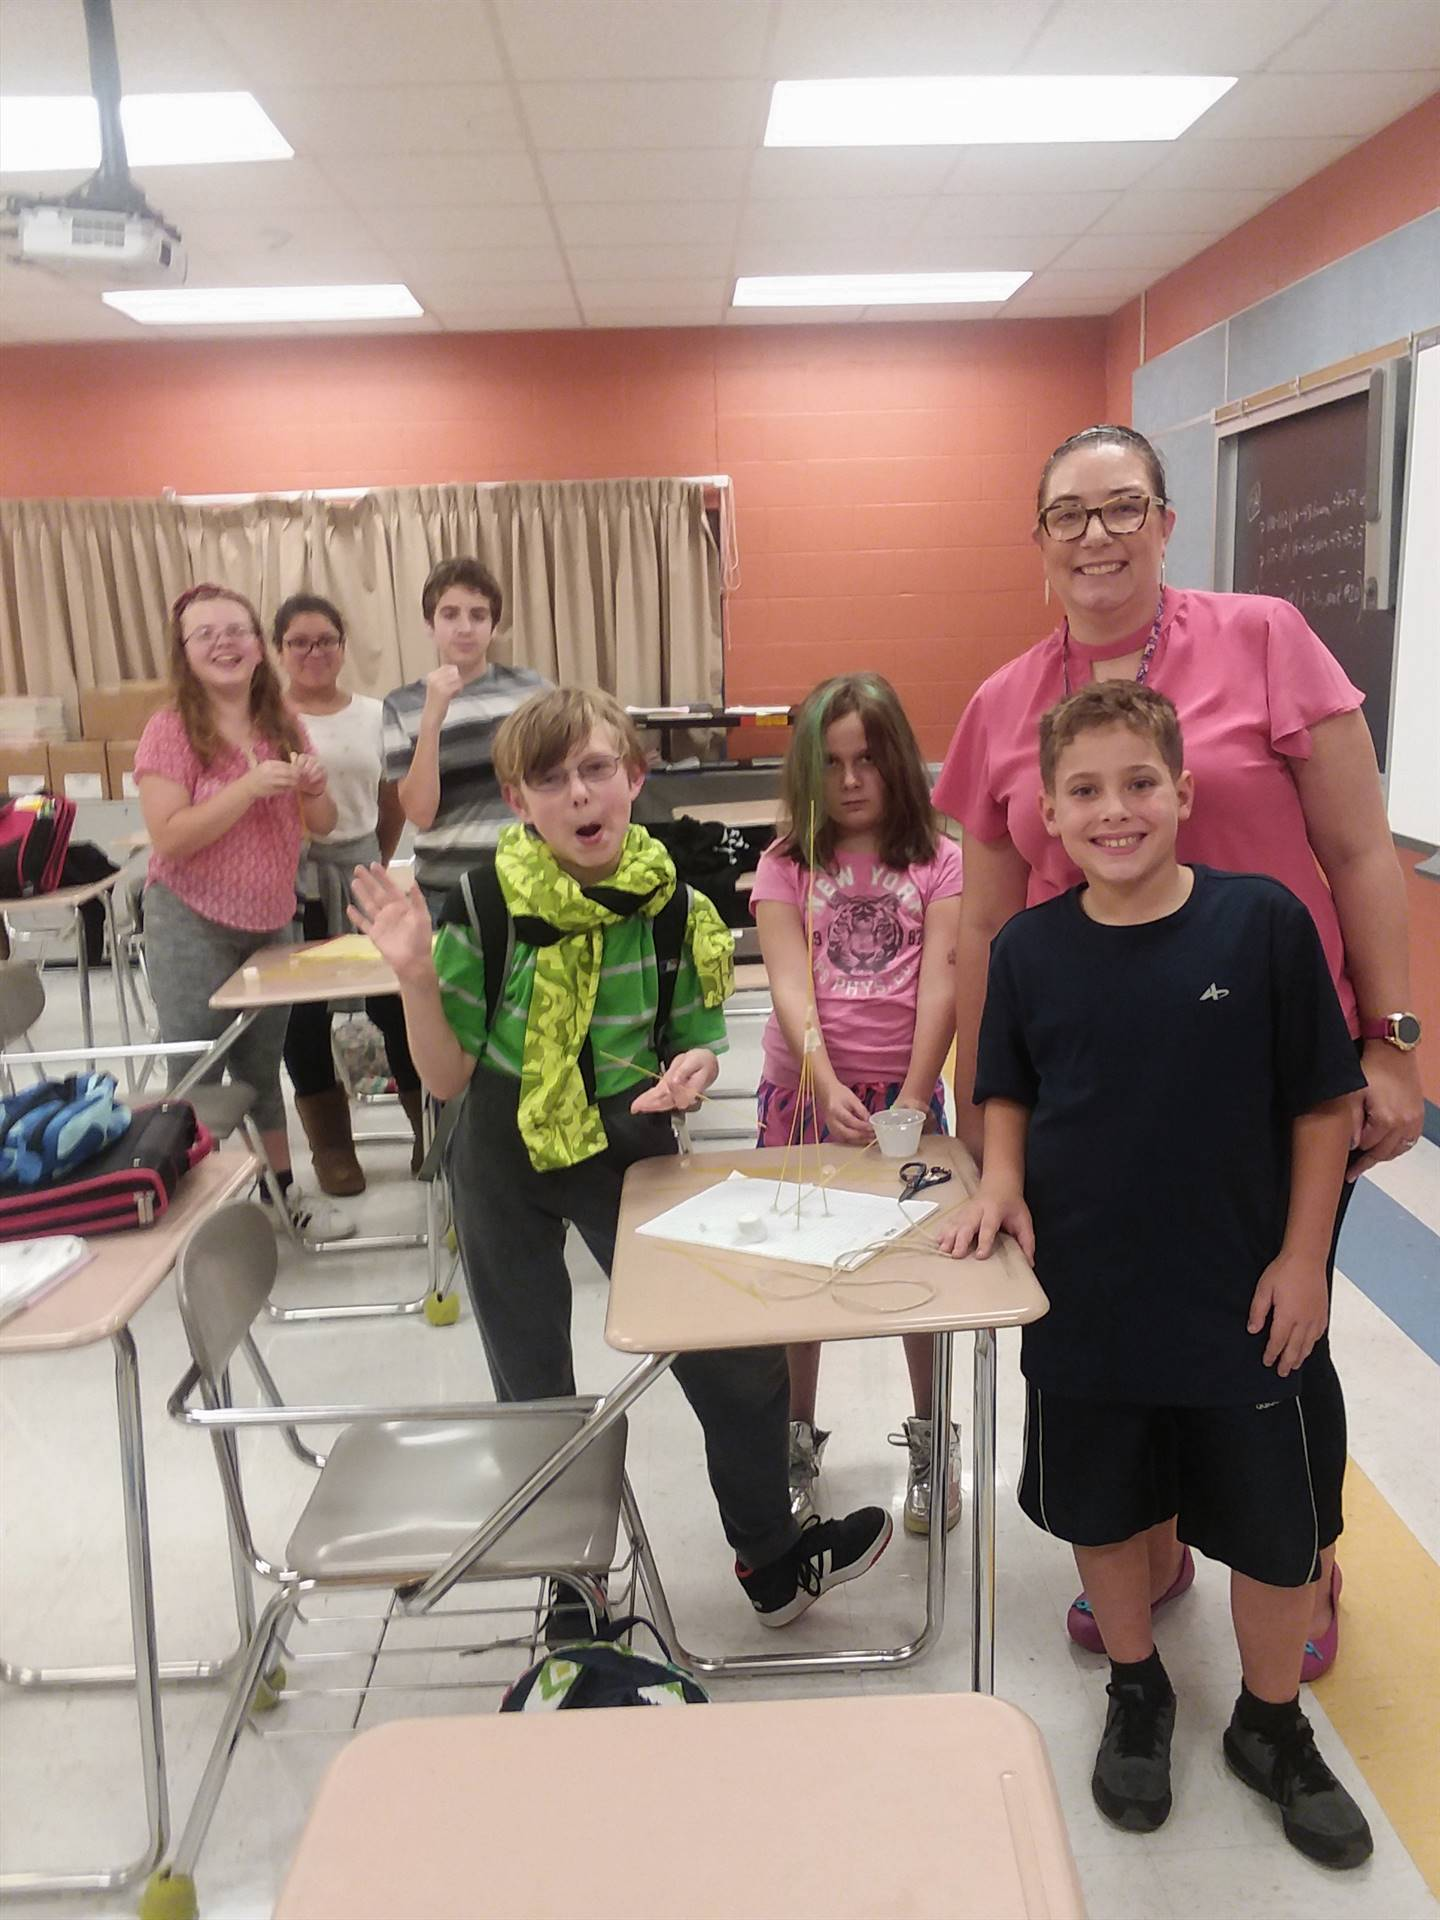 Students and teacher standing in classroom